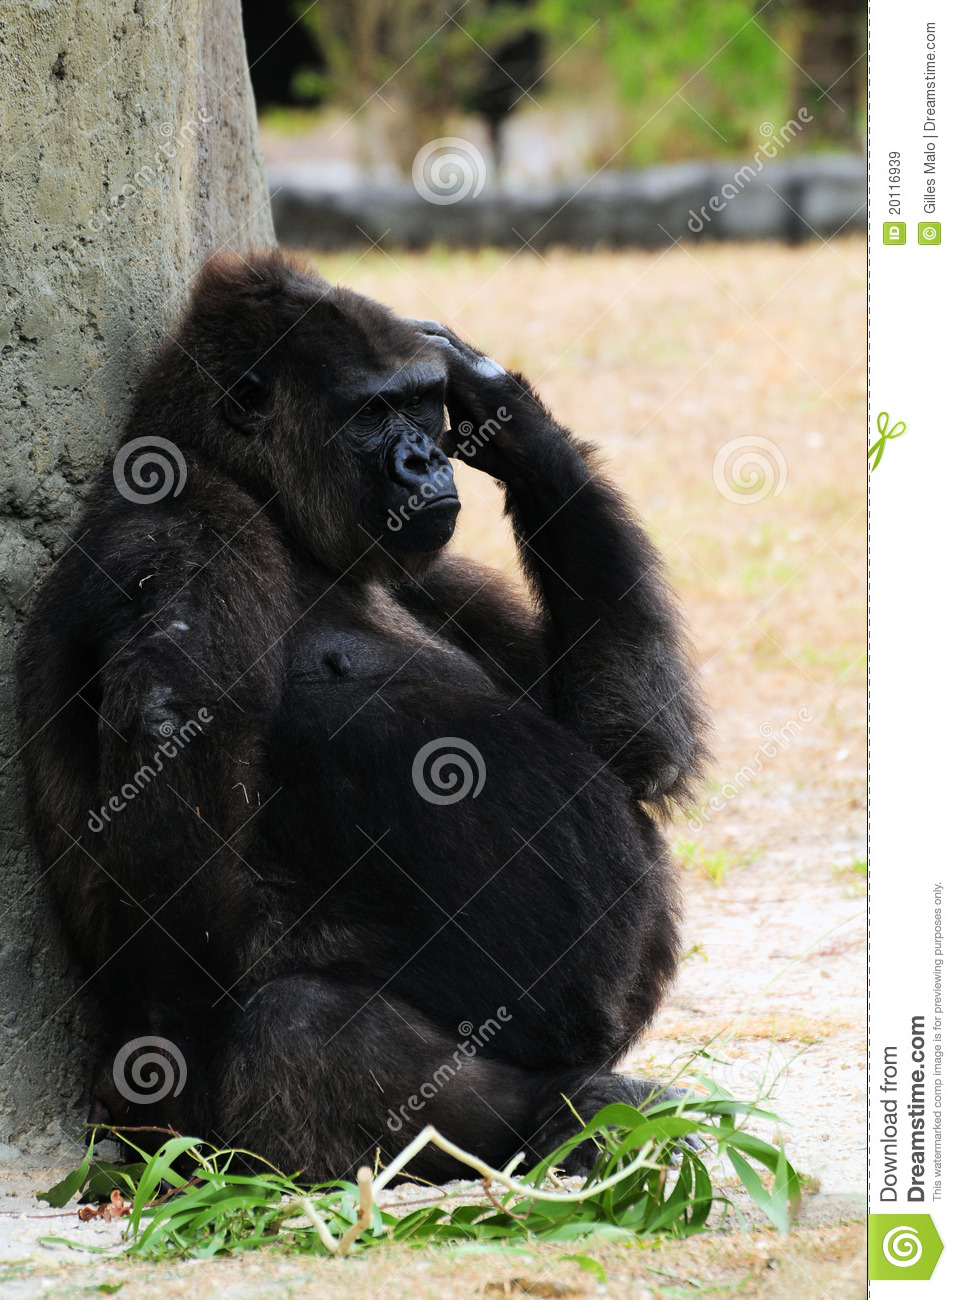 Pregnant Gorilla Royalty Free Stock Images Image 20116939